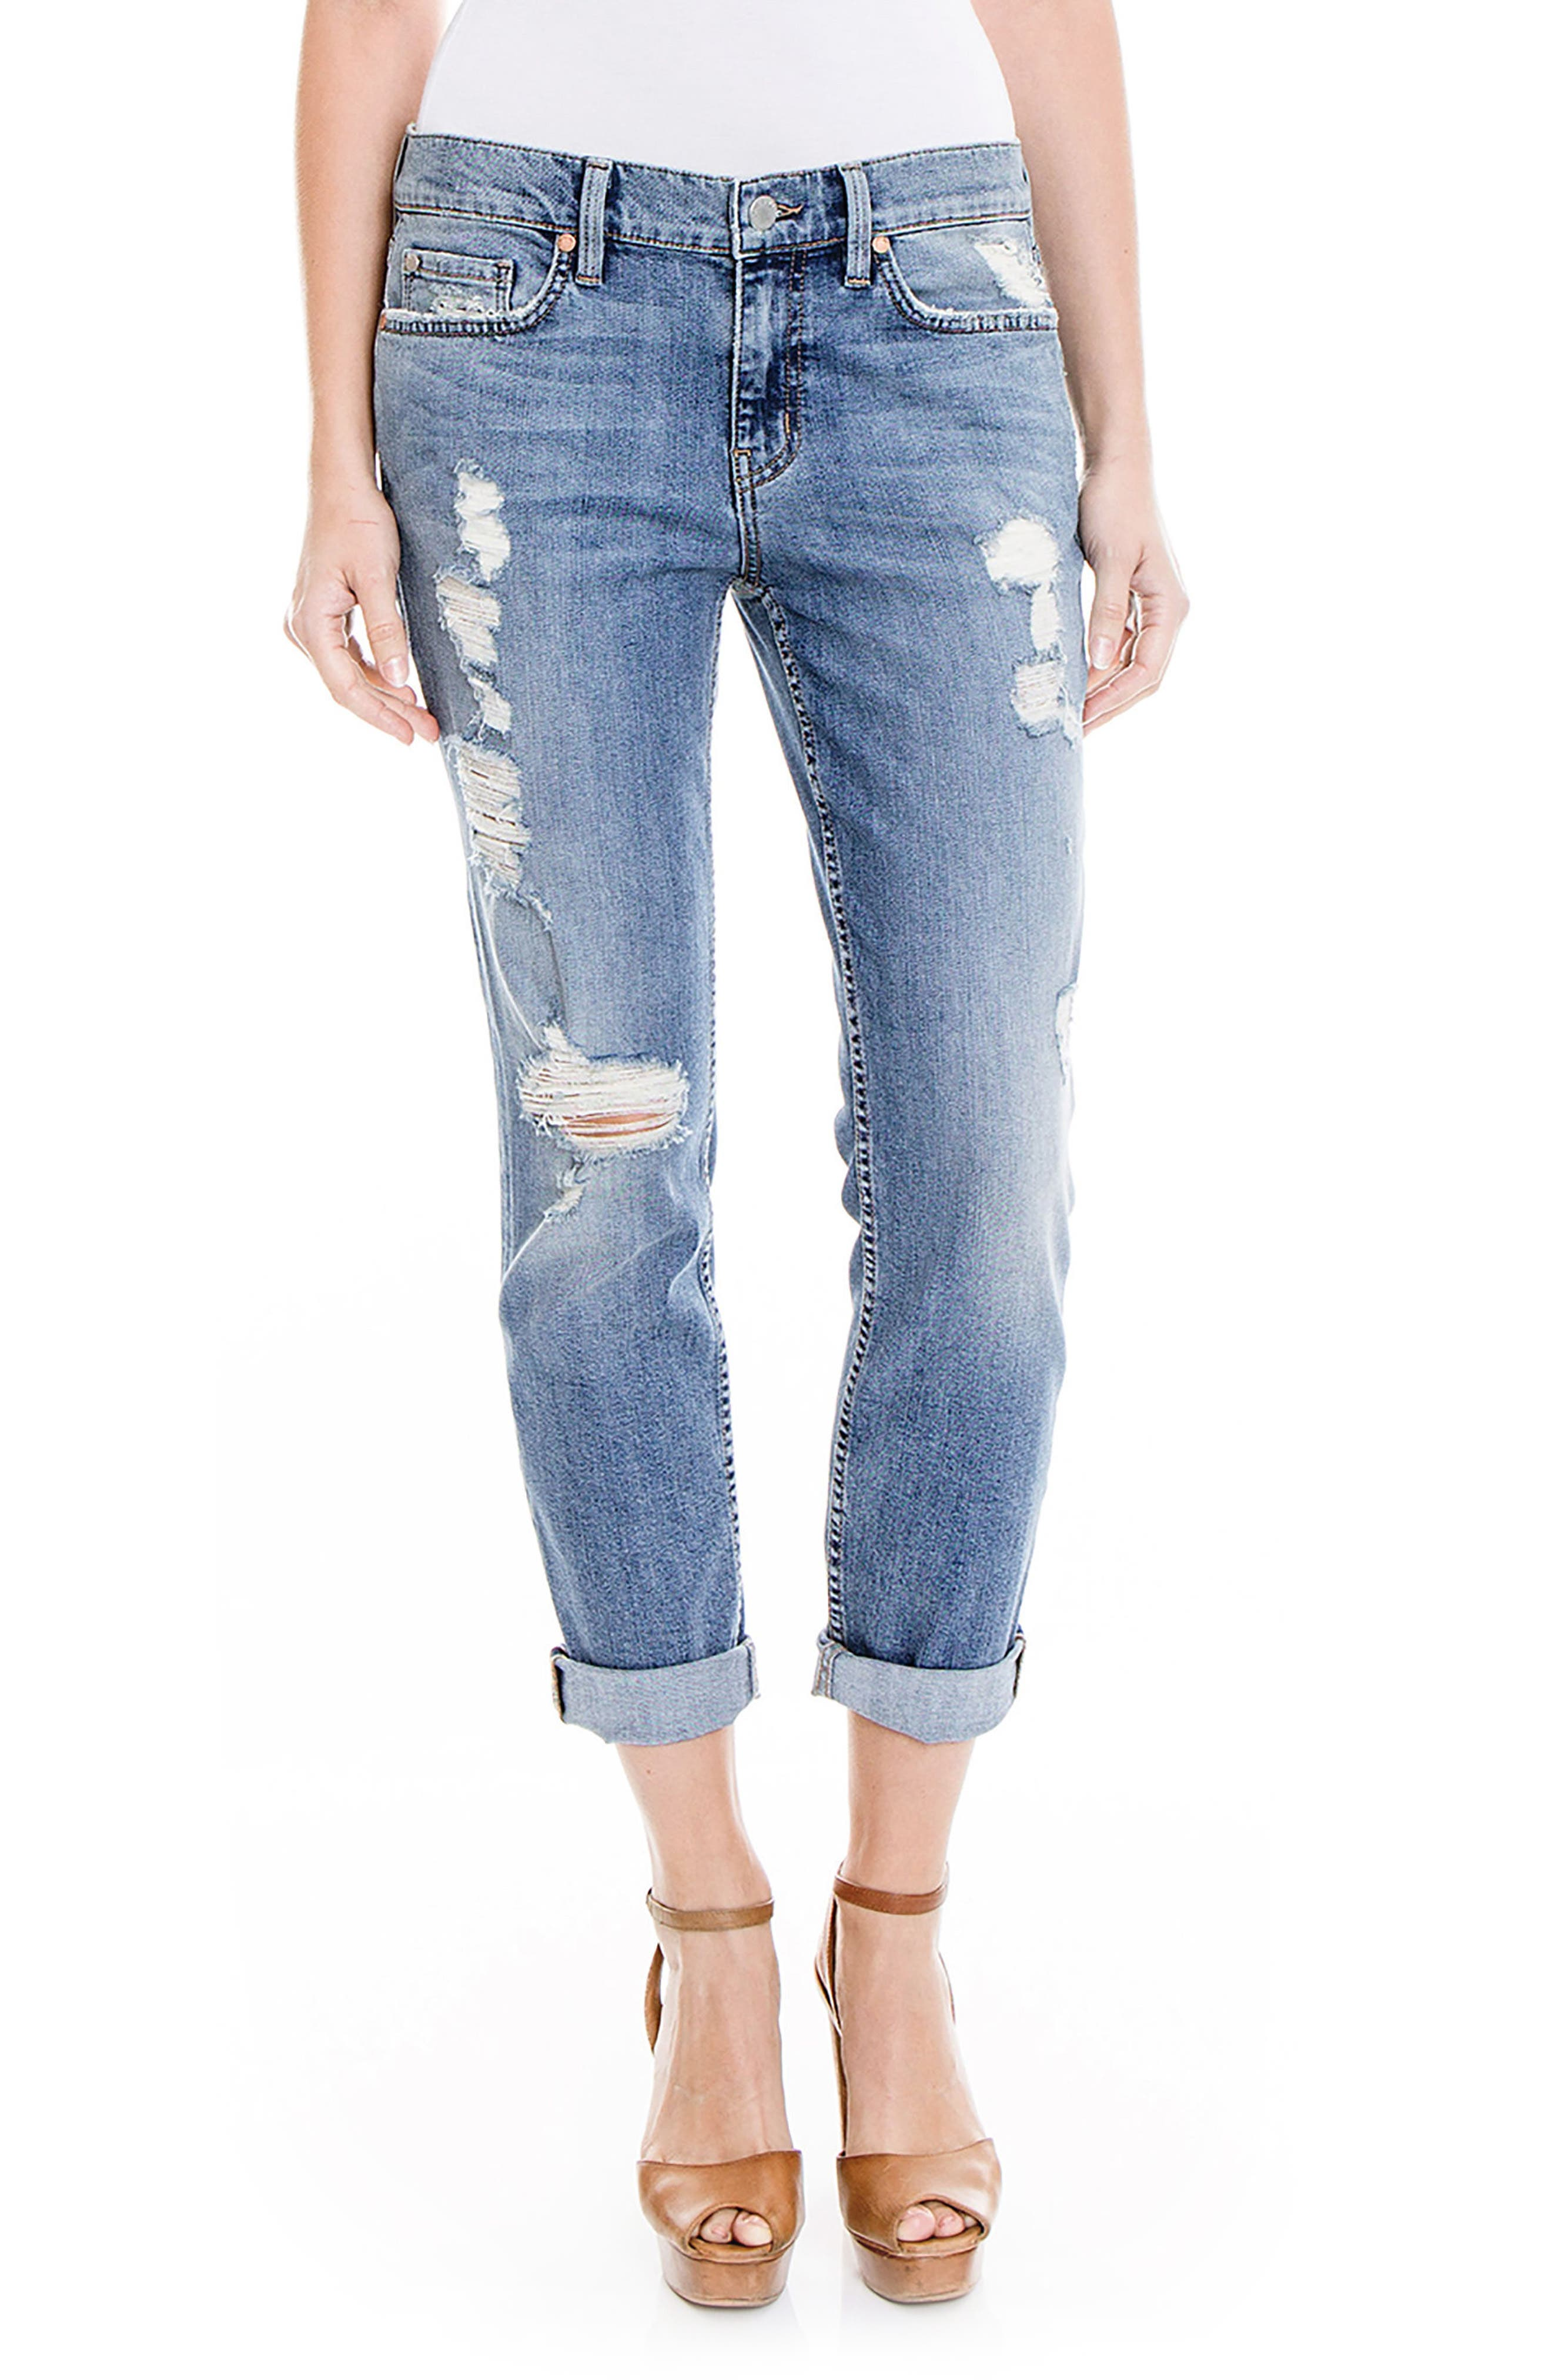 Sienna Stretch Ankle Jeans,                             Main thumbnail 1, color,                             Crosby Beach